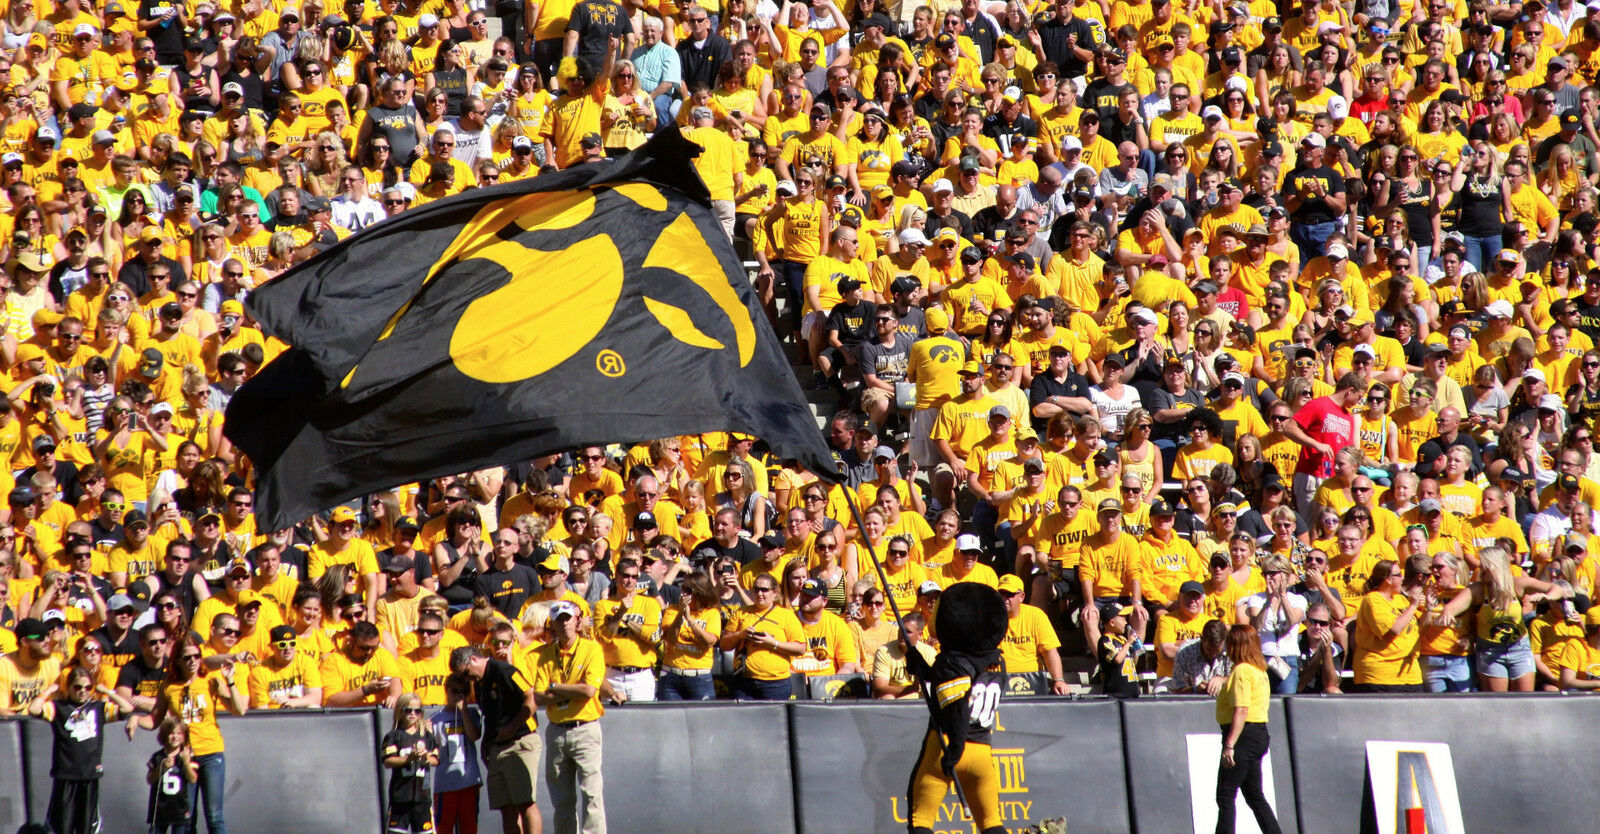 2017 Iowa Hawkeyes Football Season Tickets - Season Package (Includes Tickets for all Home Games)